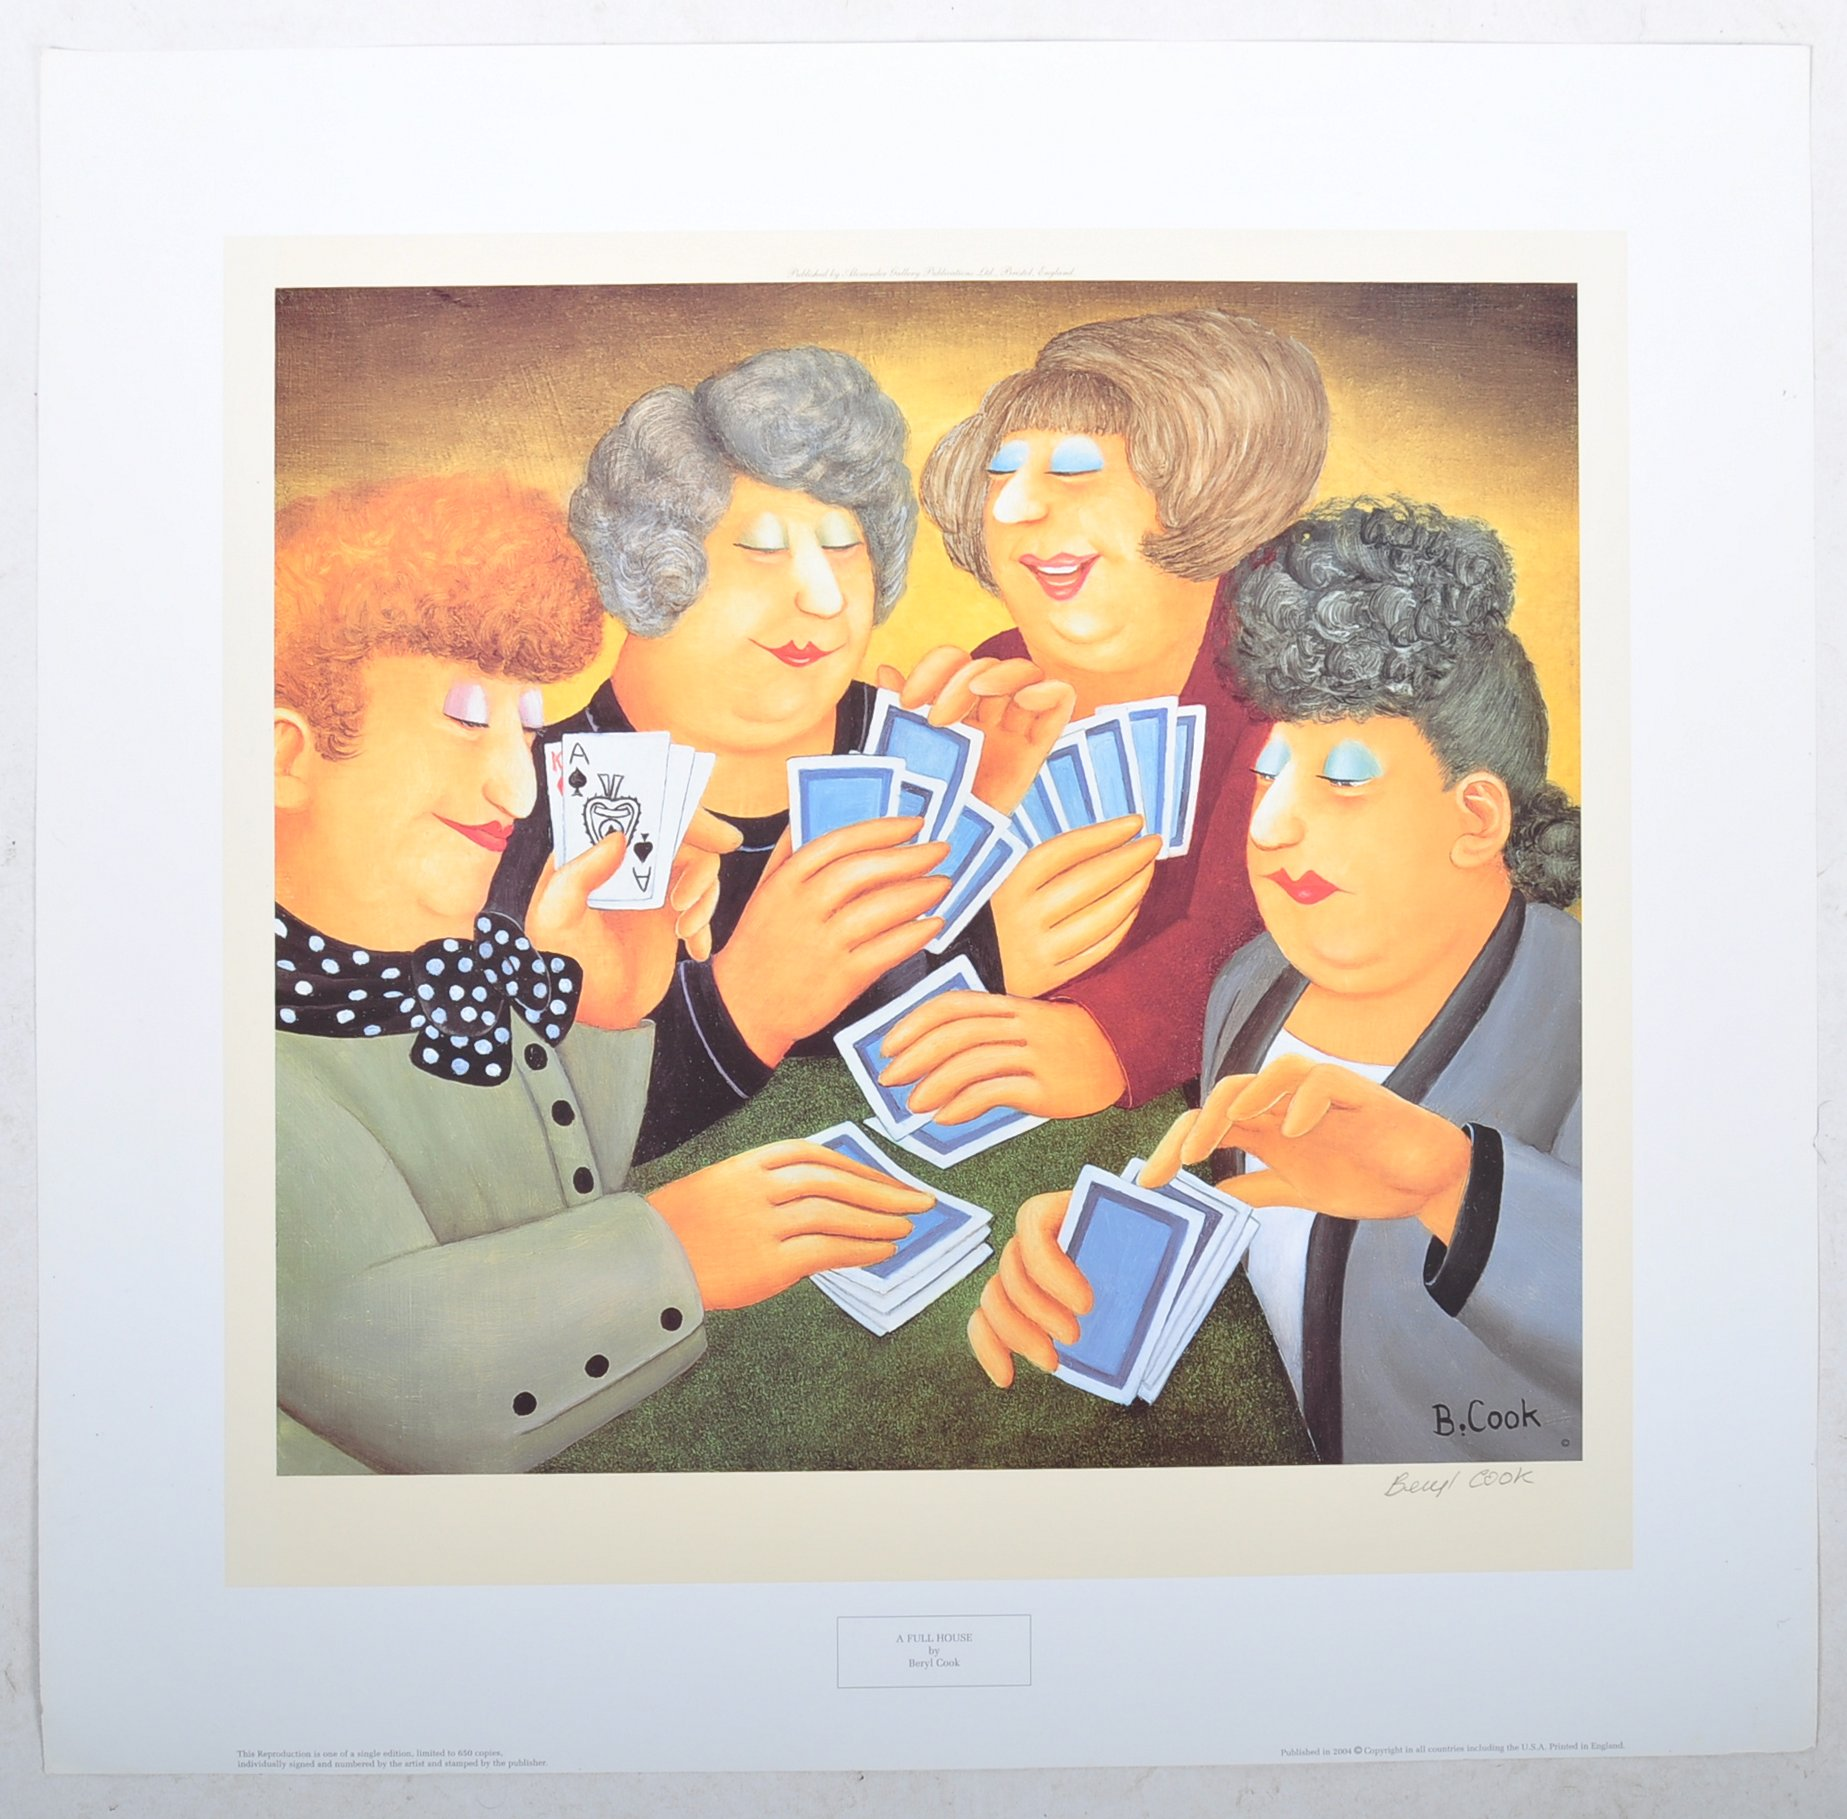 Lot 47 - BERYL COOK SIGNED PRINT A FULL HOUSE FROM THE ALEXANDER GALLERY